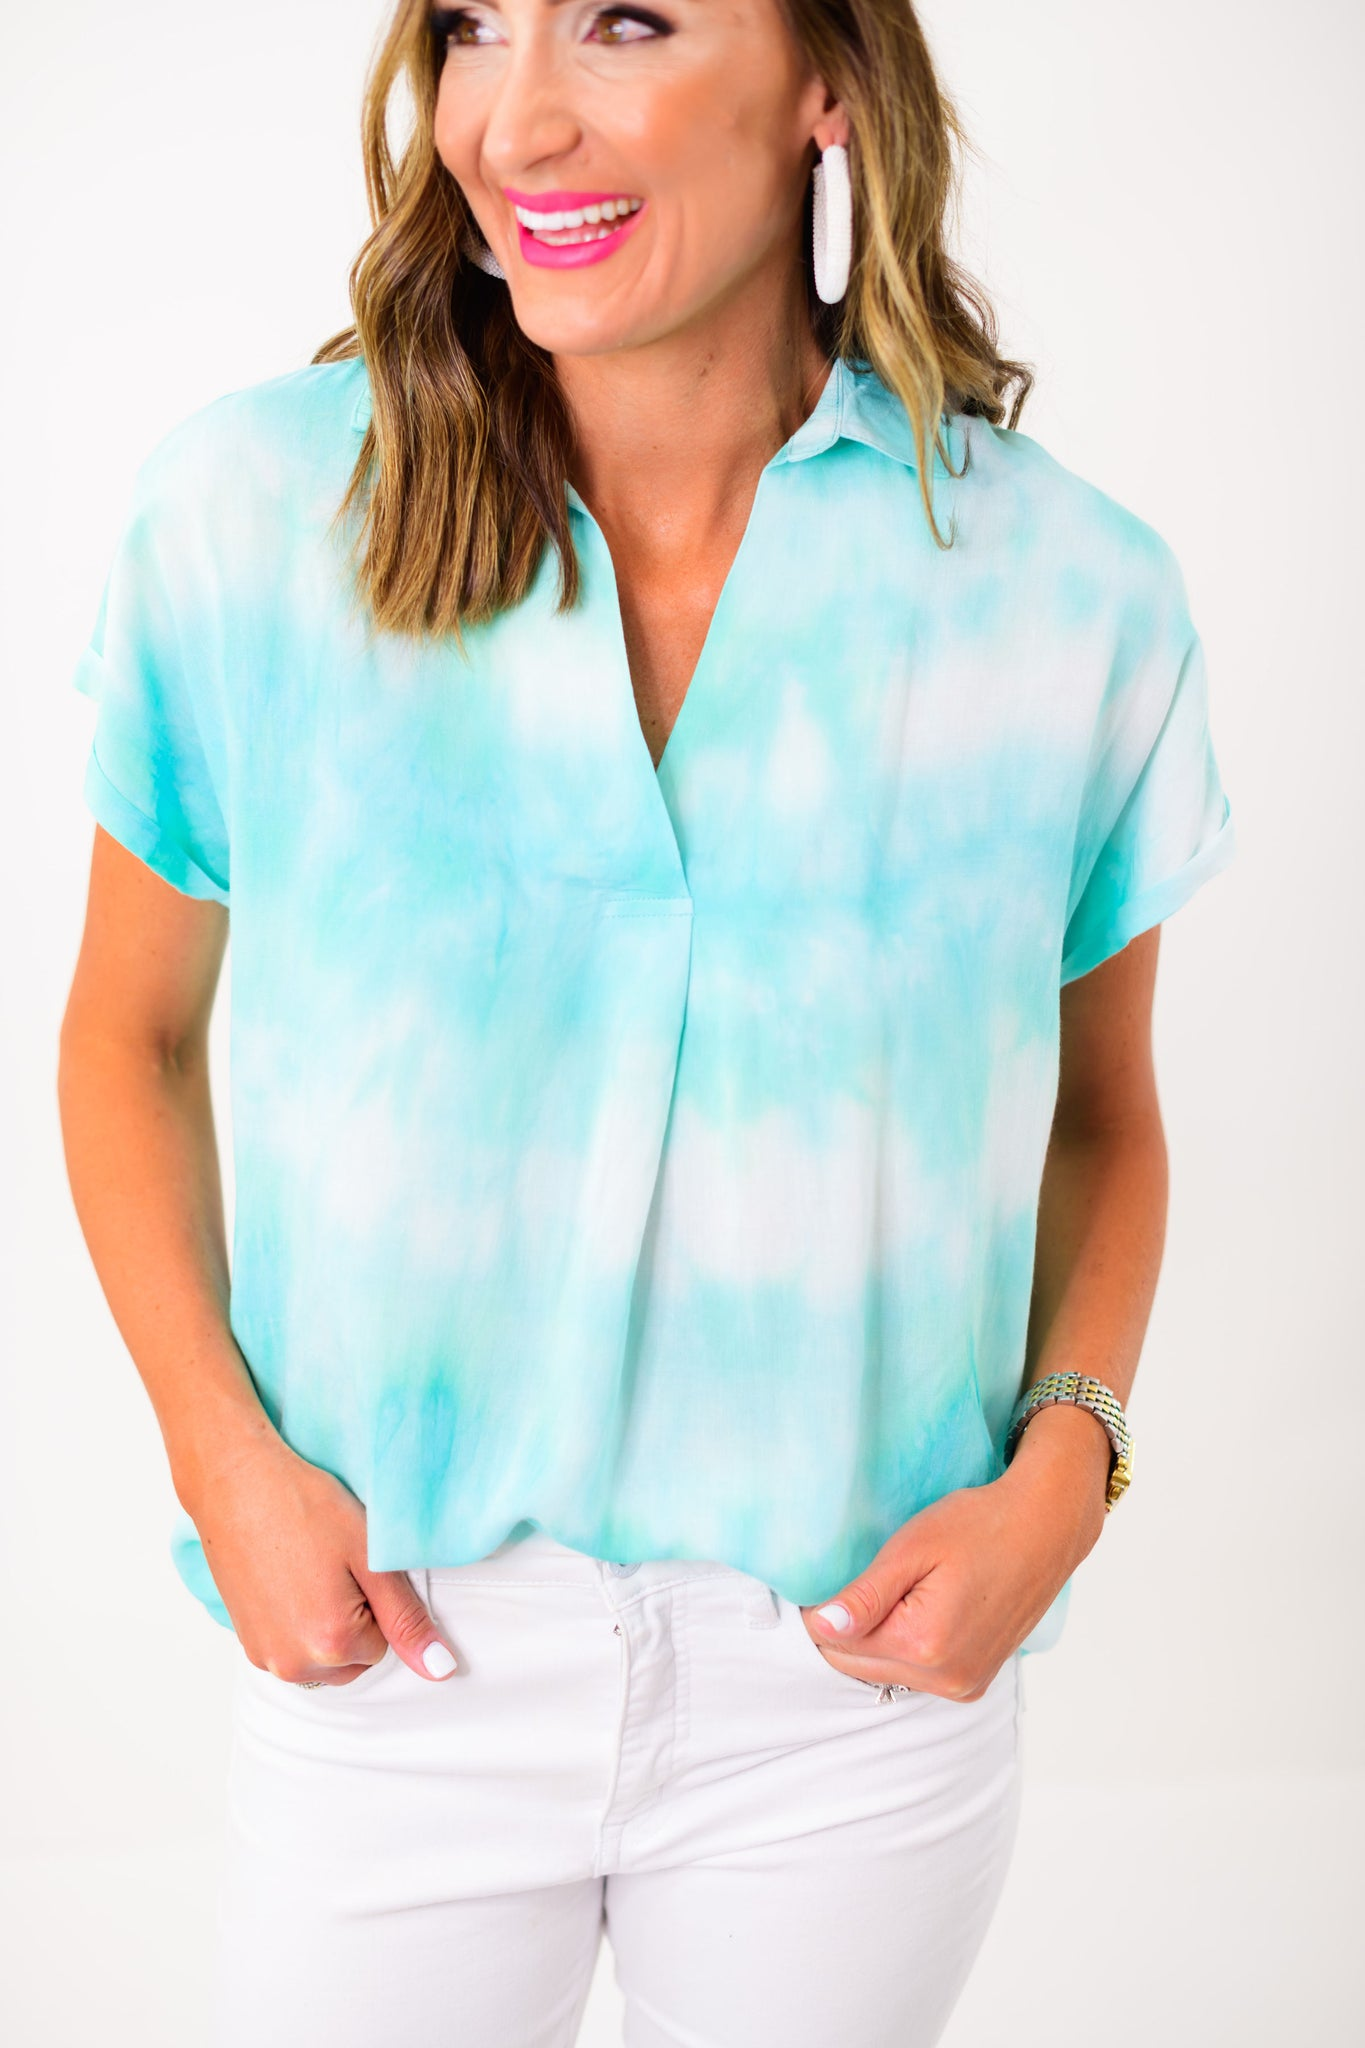 Mint Tie Dye Short Sleeve Collared Top